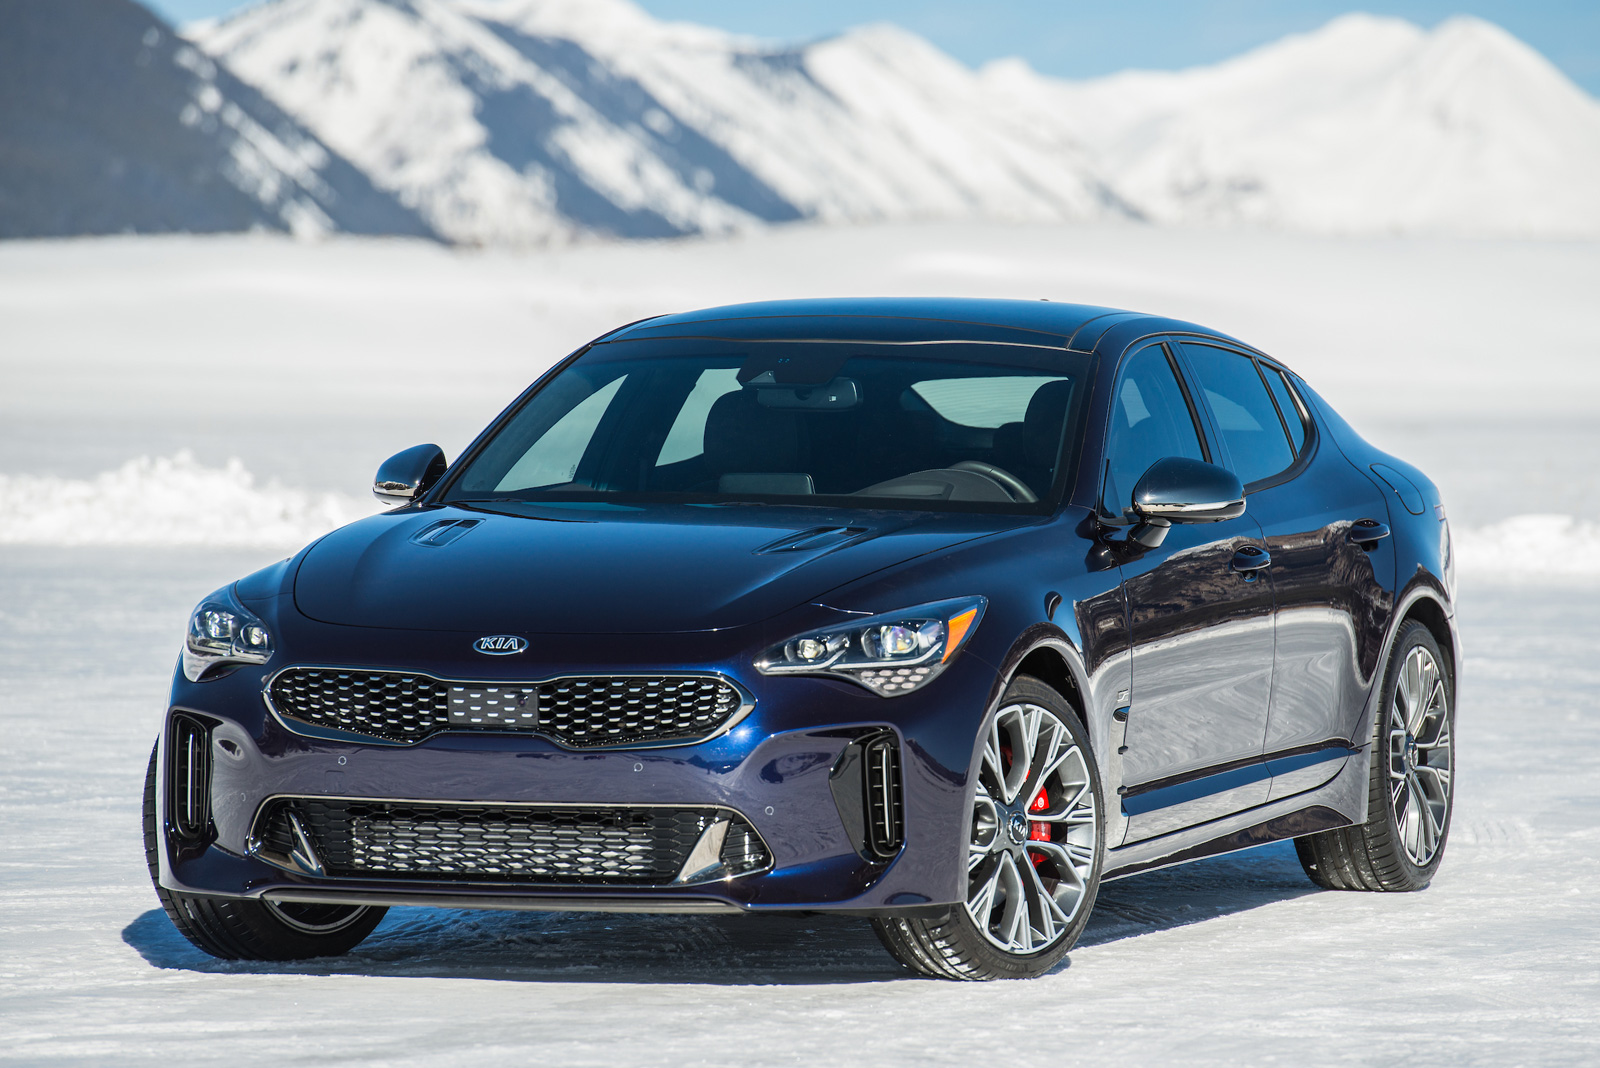 Kia Stinger Gt Already Has A Limited Edition Model